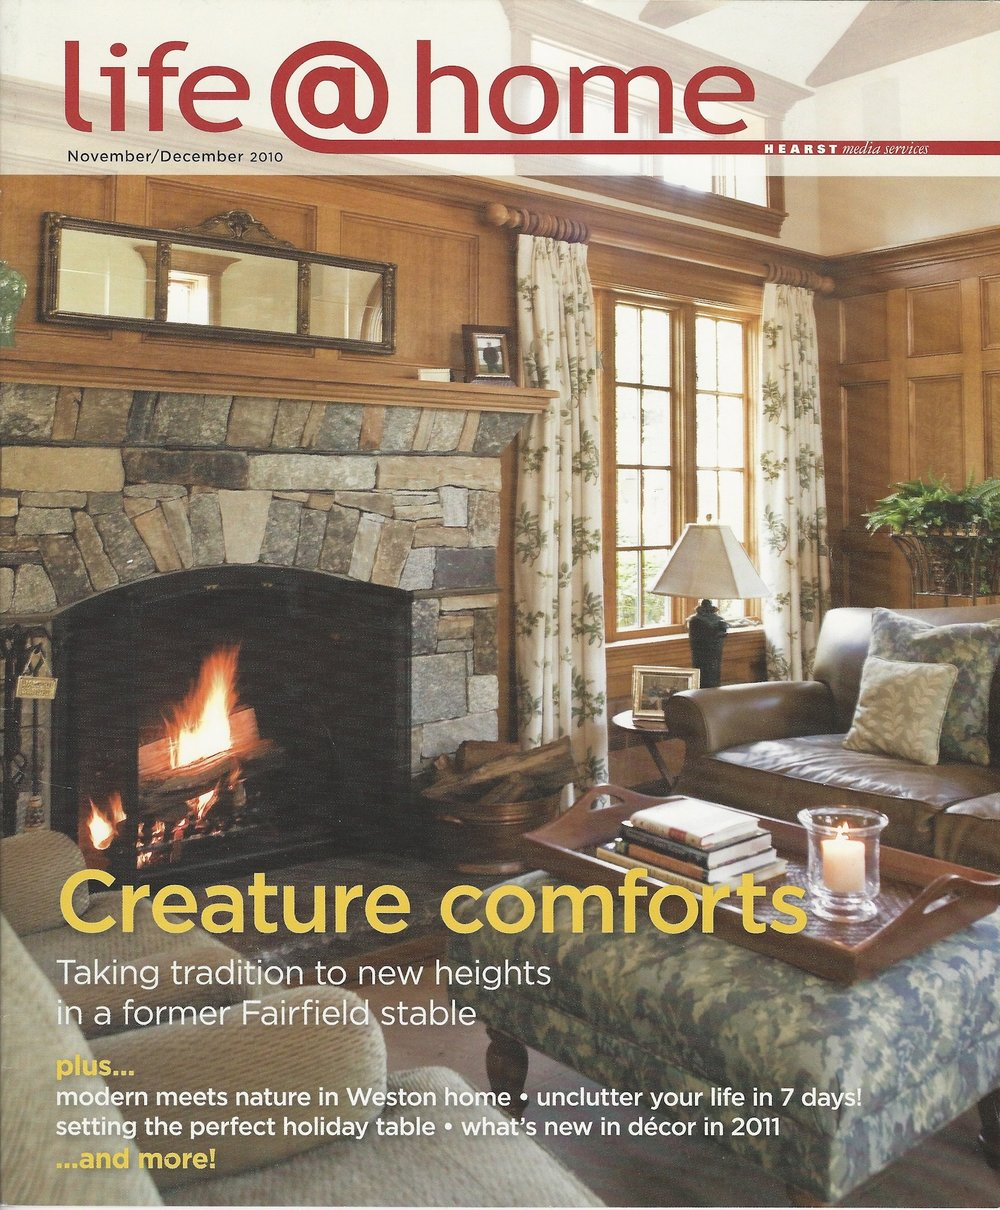 life@home cover.jpg